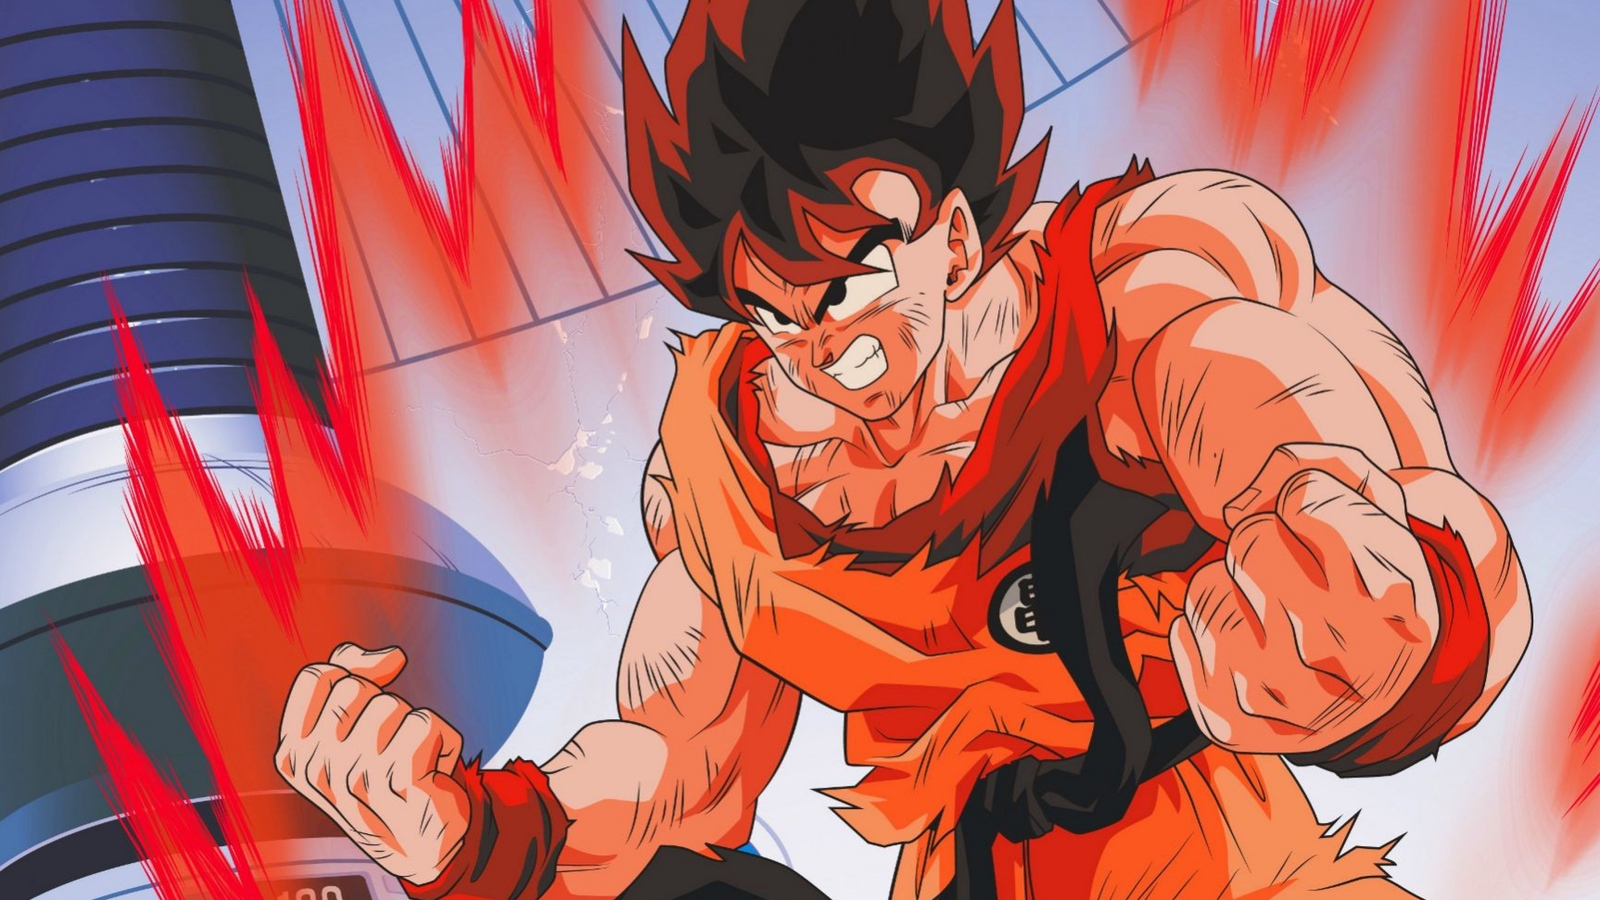 1600x900 Goku Dragon Ball Z 4k 1600x900 Resolution Hd 4k Wallpapers Images Backgrounds Photos And Pictures